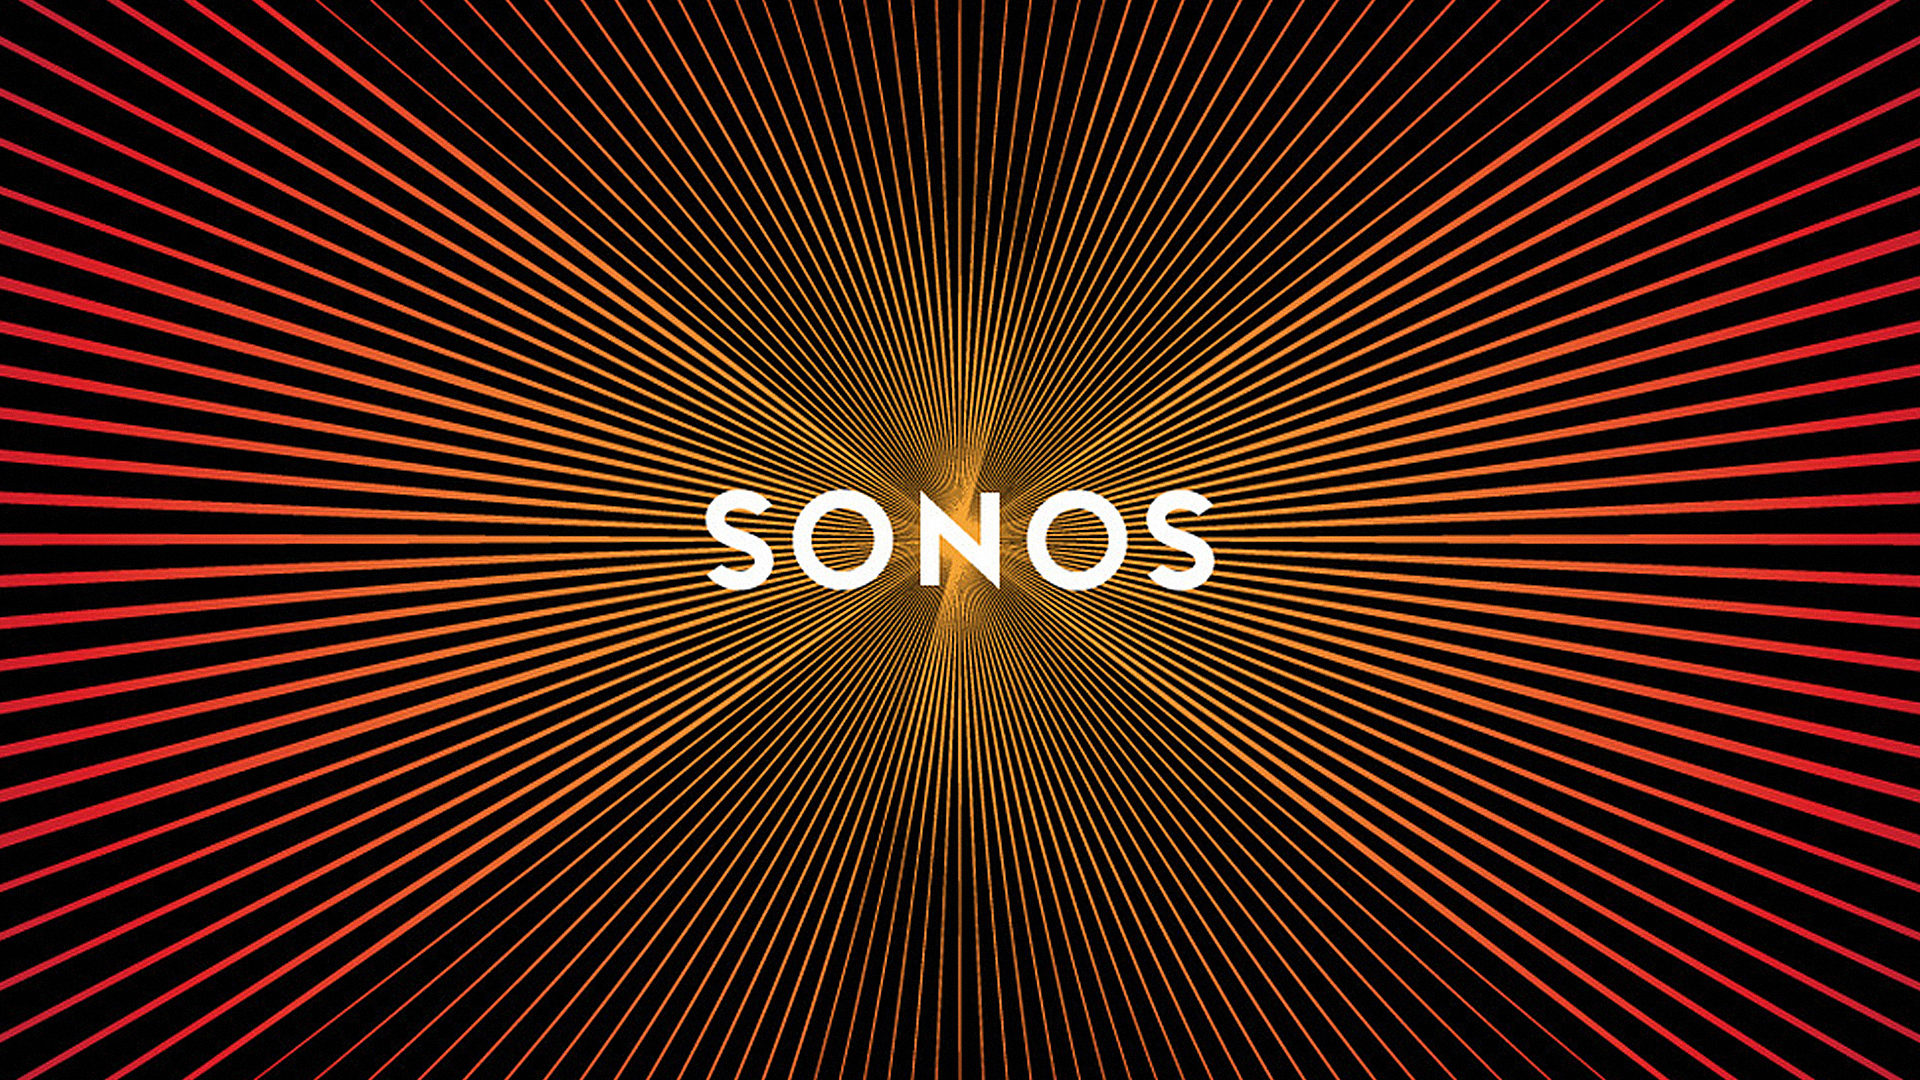 3041367-poster-p-1-sonoss-hot-new-viral-logo-was-a-happy-accident1